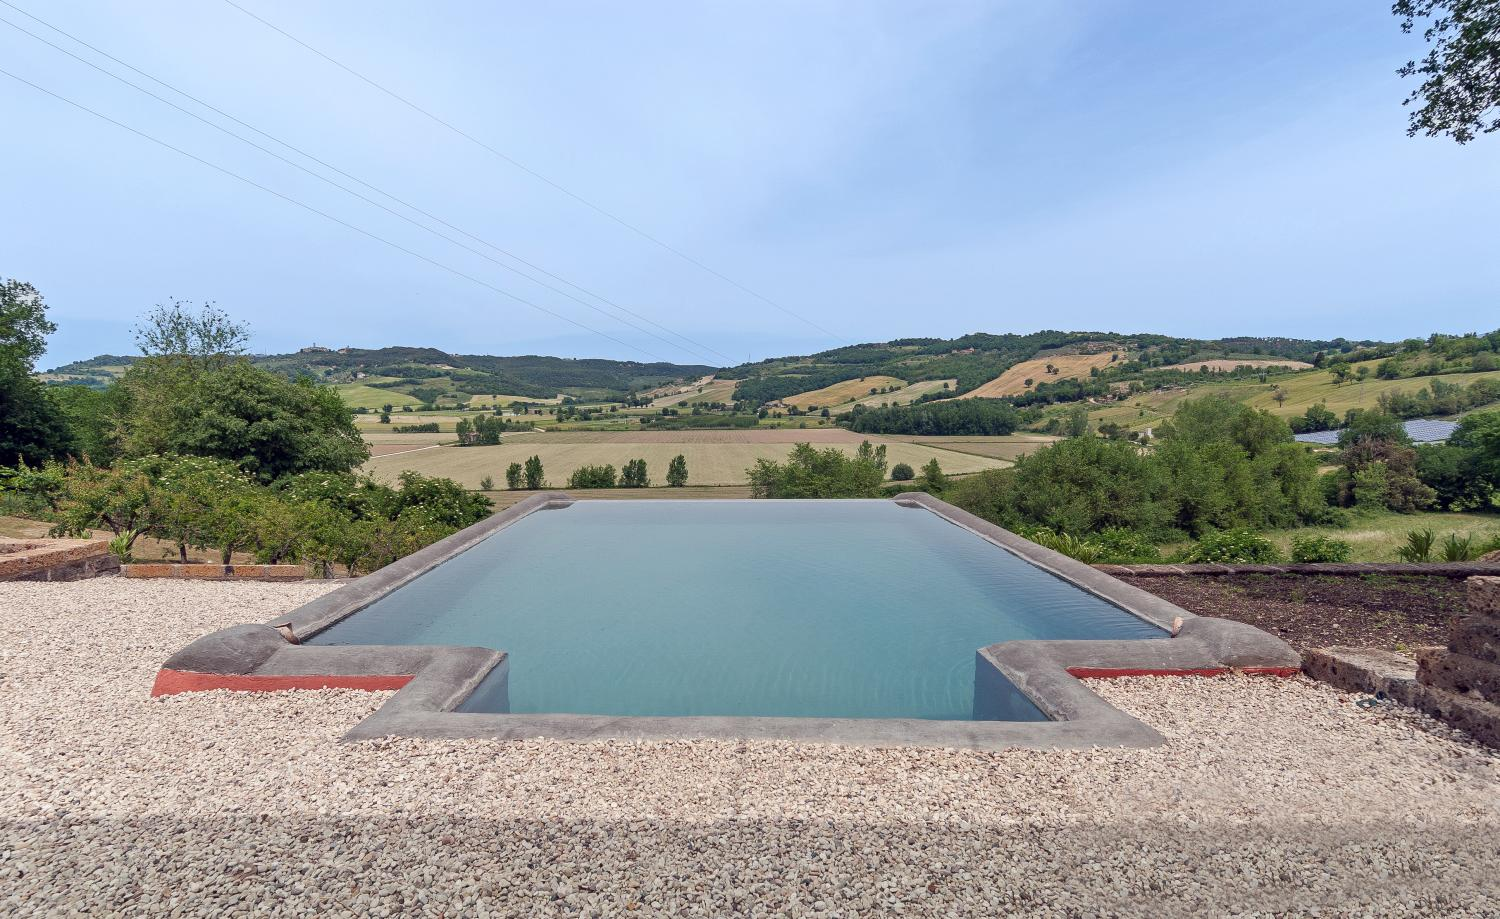 Private holiday home in Umbria Italy